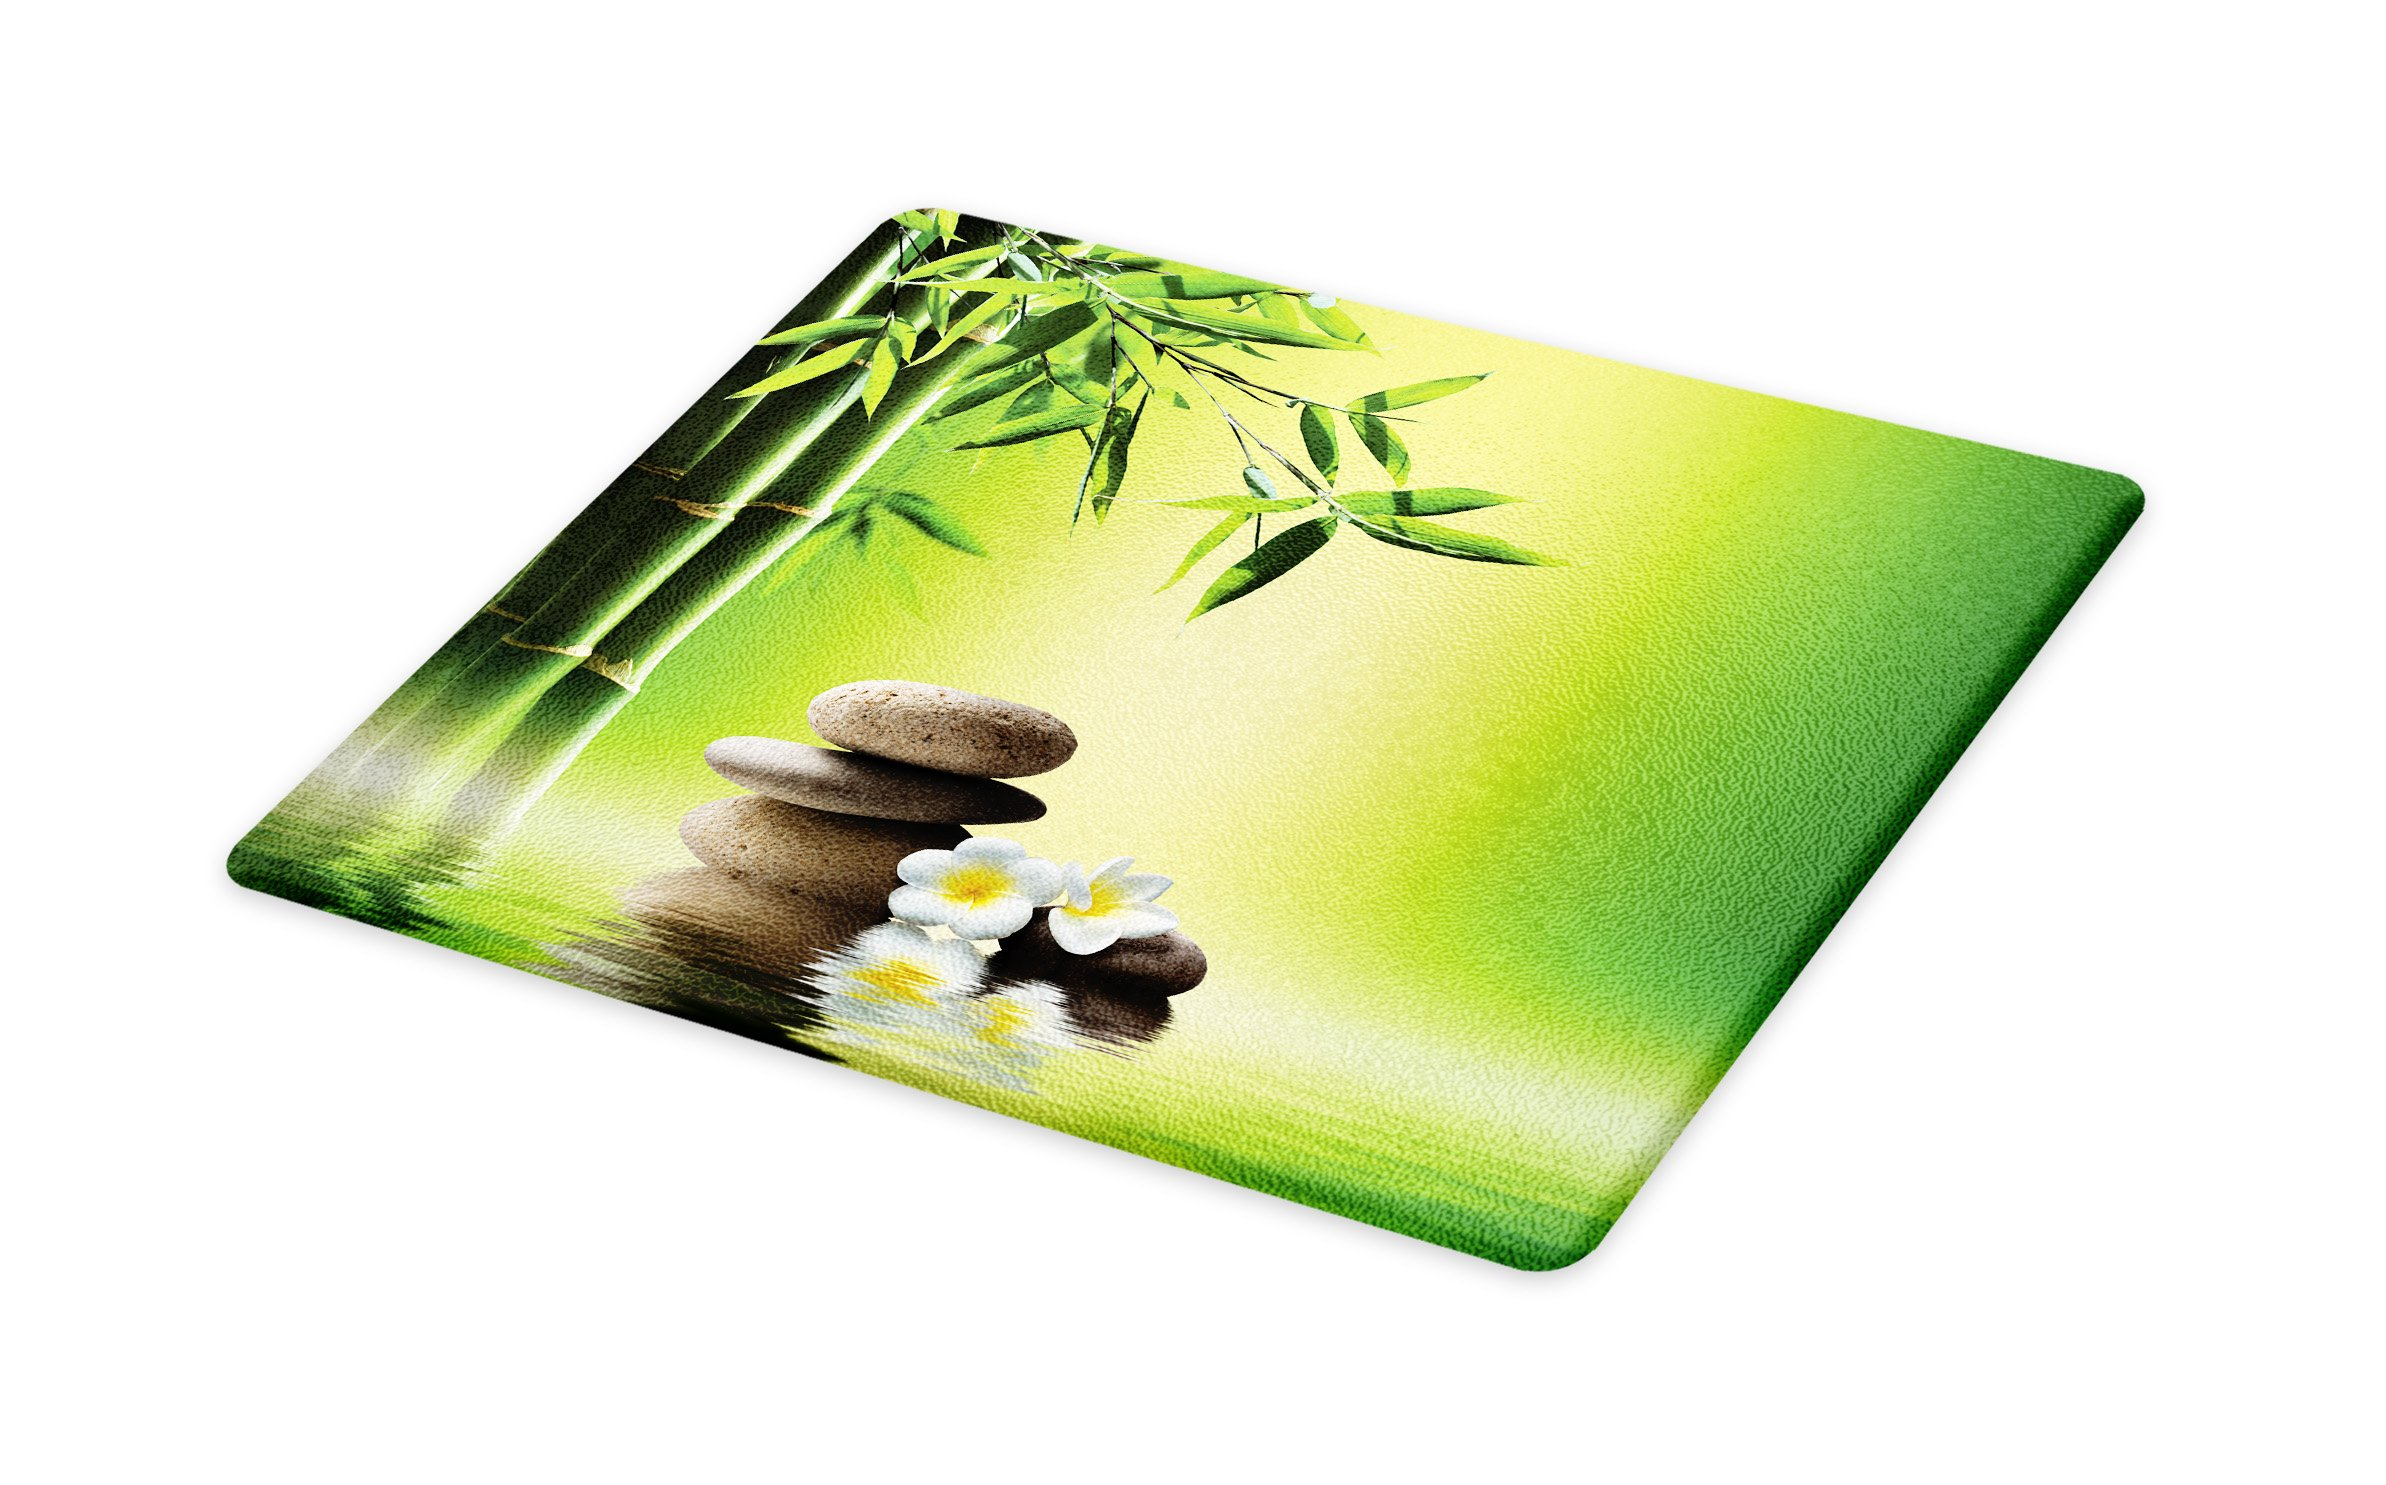 Lunarable Spa Cutting Board, Japanese Therapy Relaxation Stones Frangipani Flowers Bamboo Tree Healthcare Theme, Decorative Tempered Glass Cutting and Serving Board, Large Size, Green Yellow